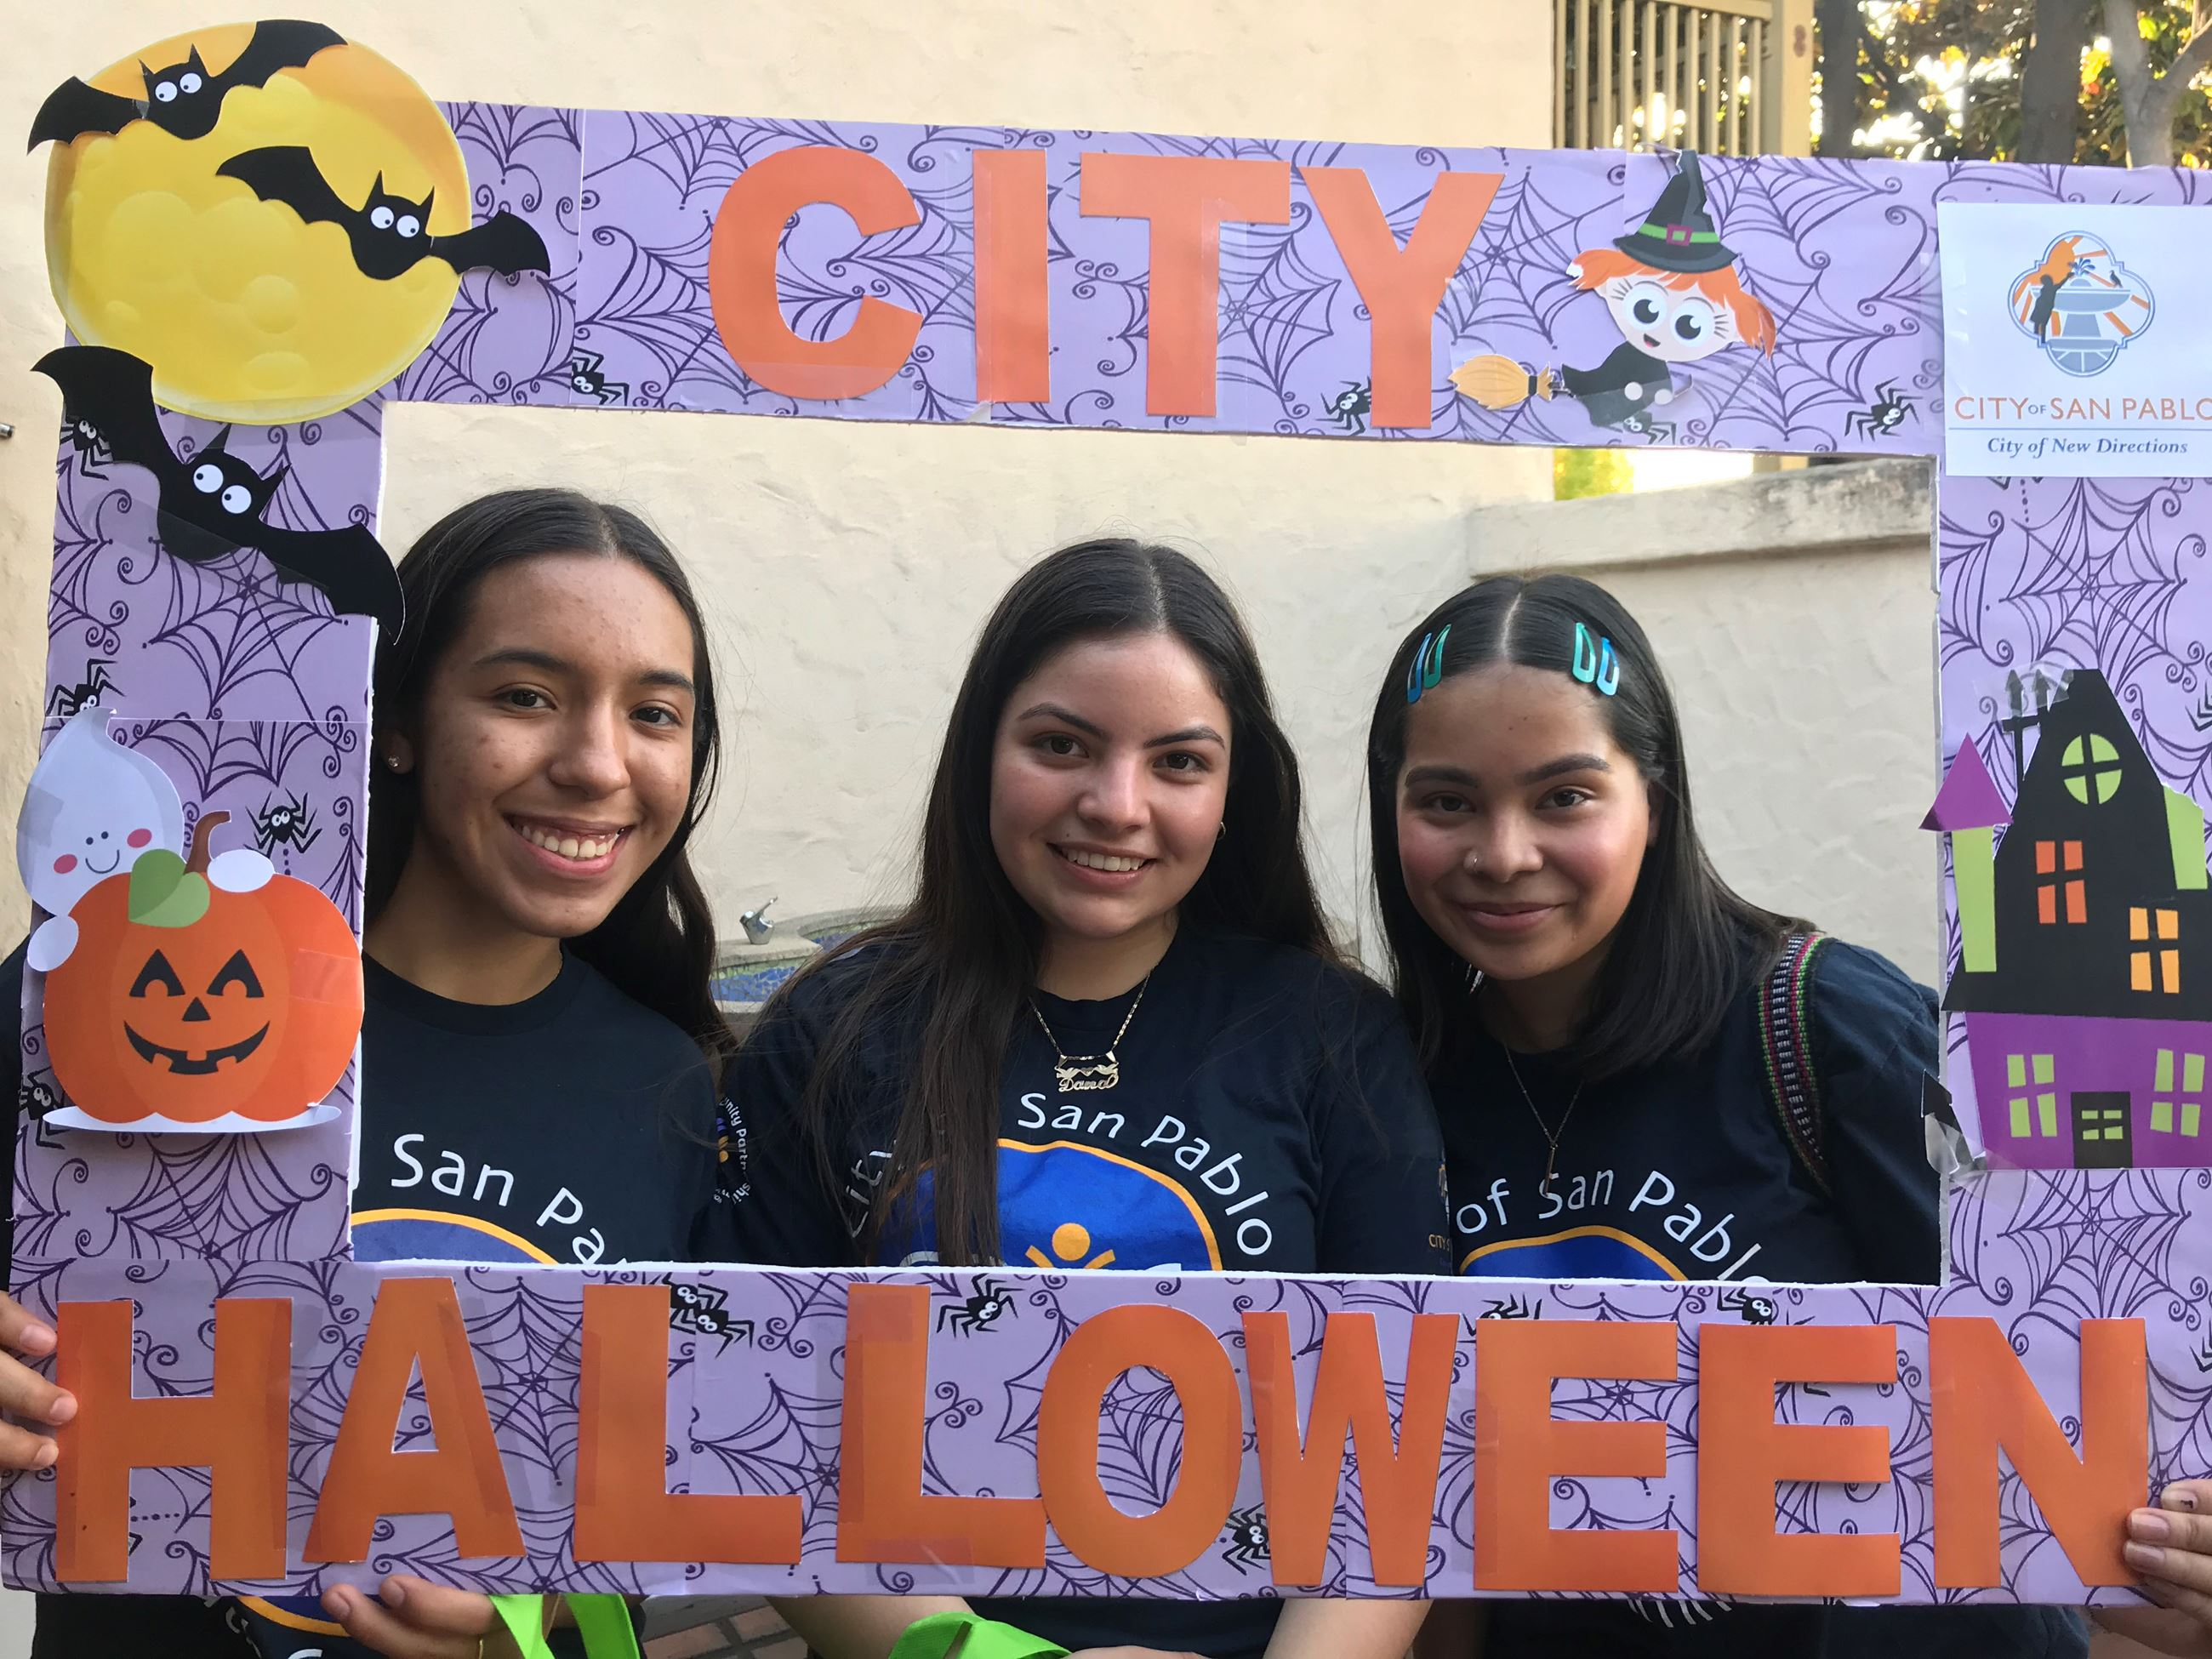 City Hall-o-ween Event